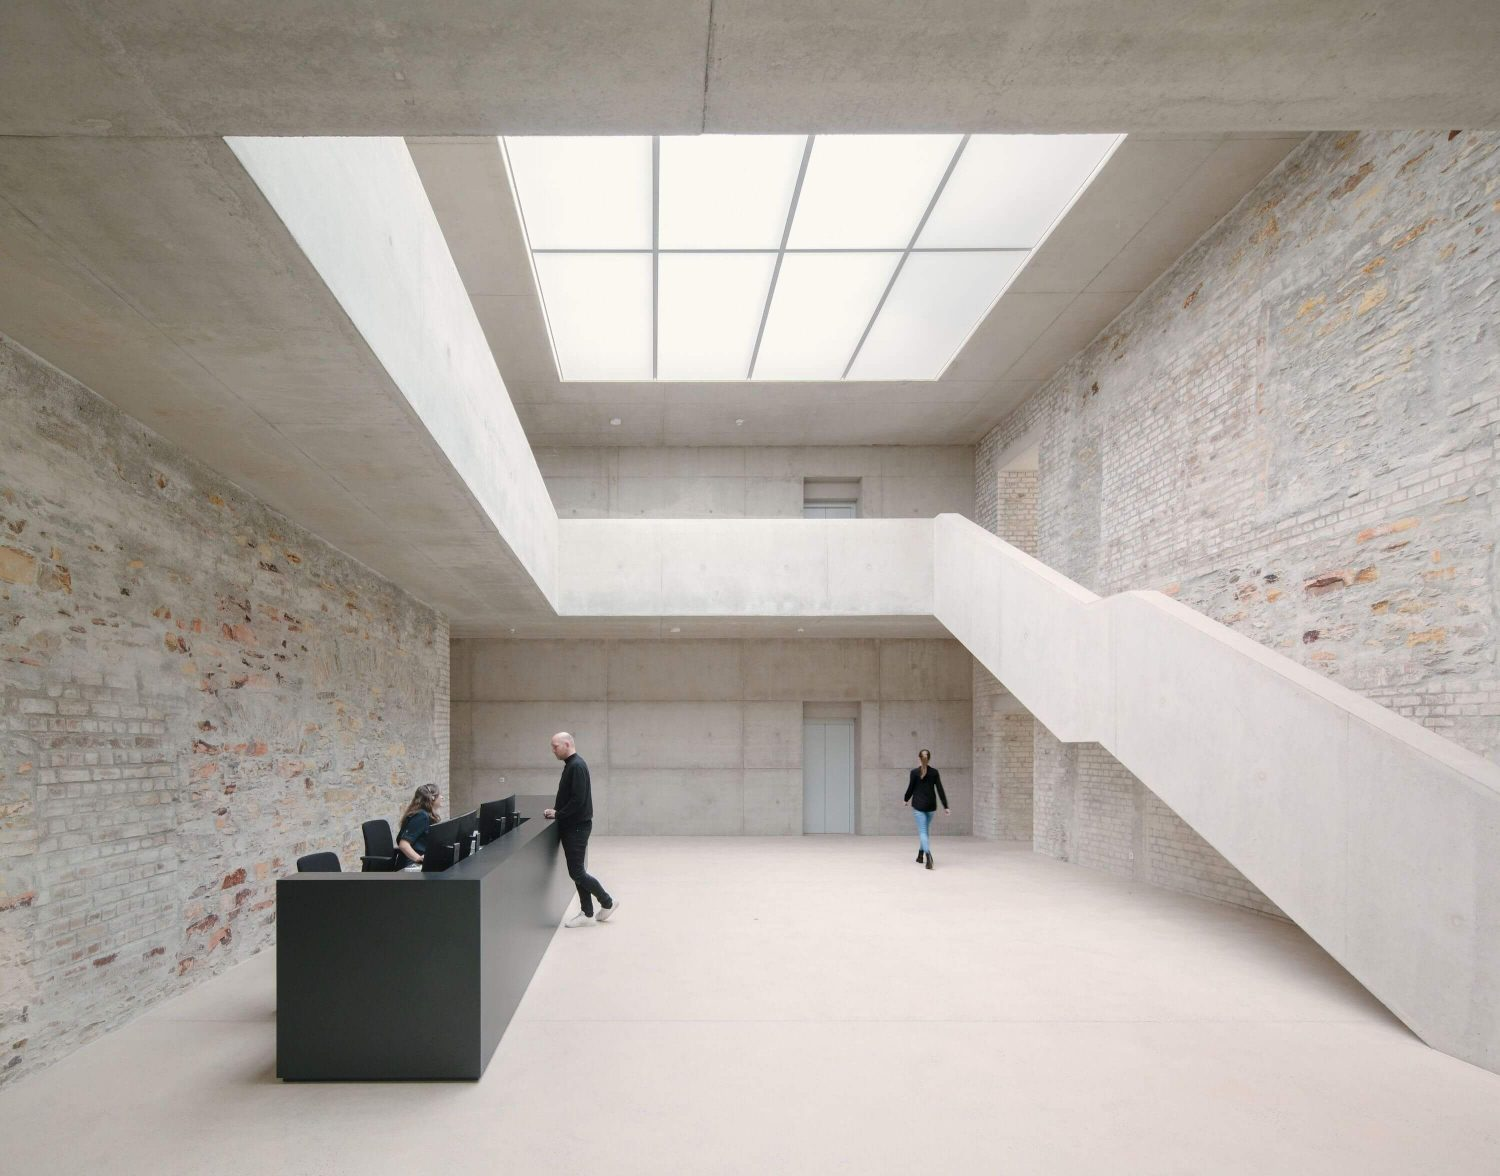 Jacoby Studios Headquarters by David Chipperfield Architects